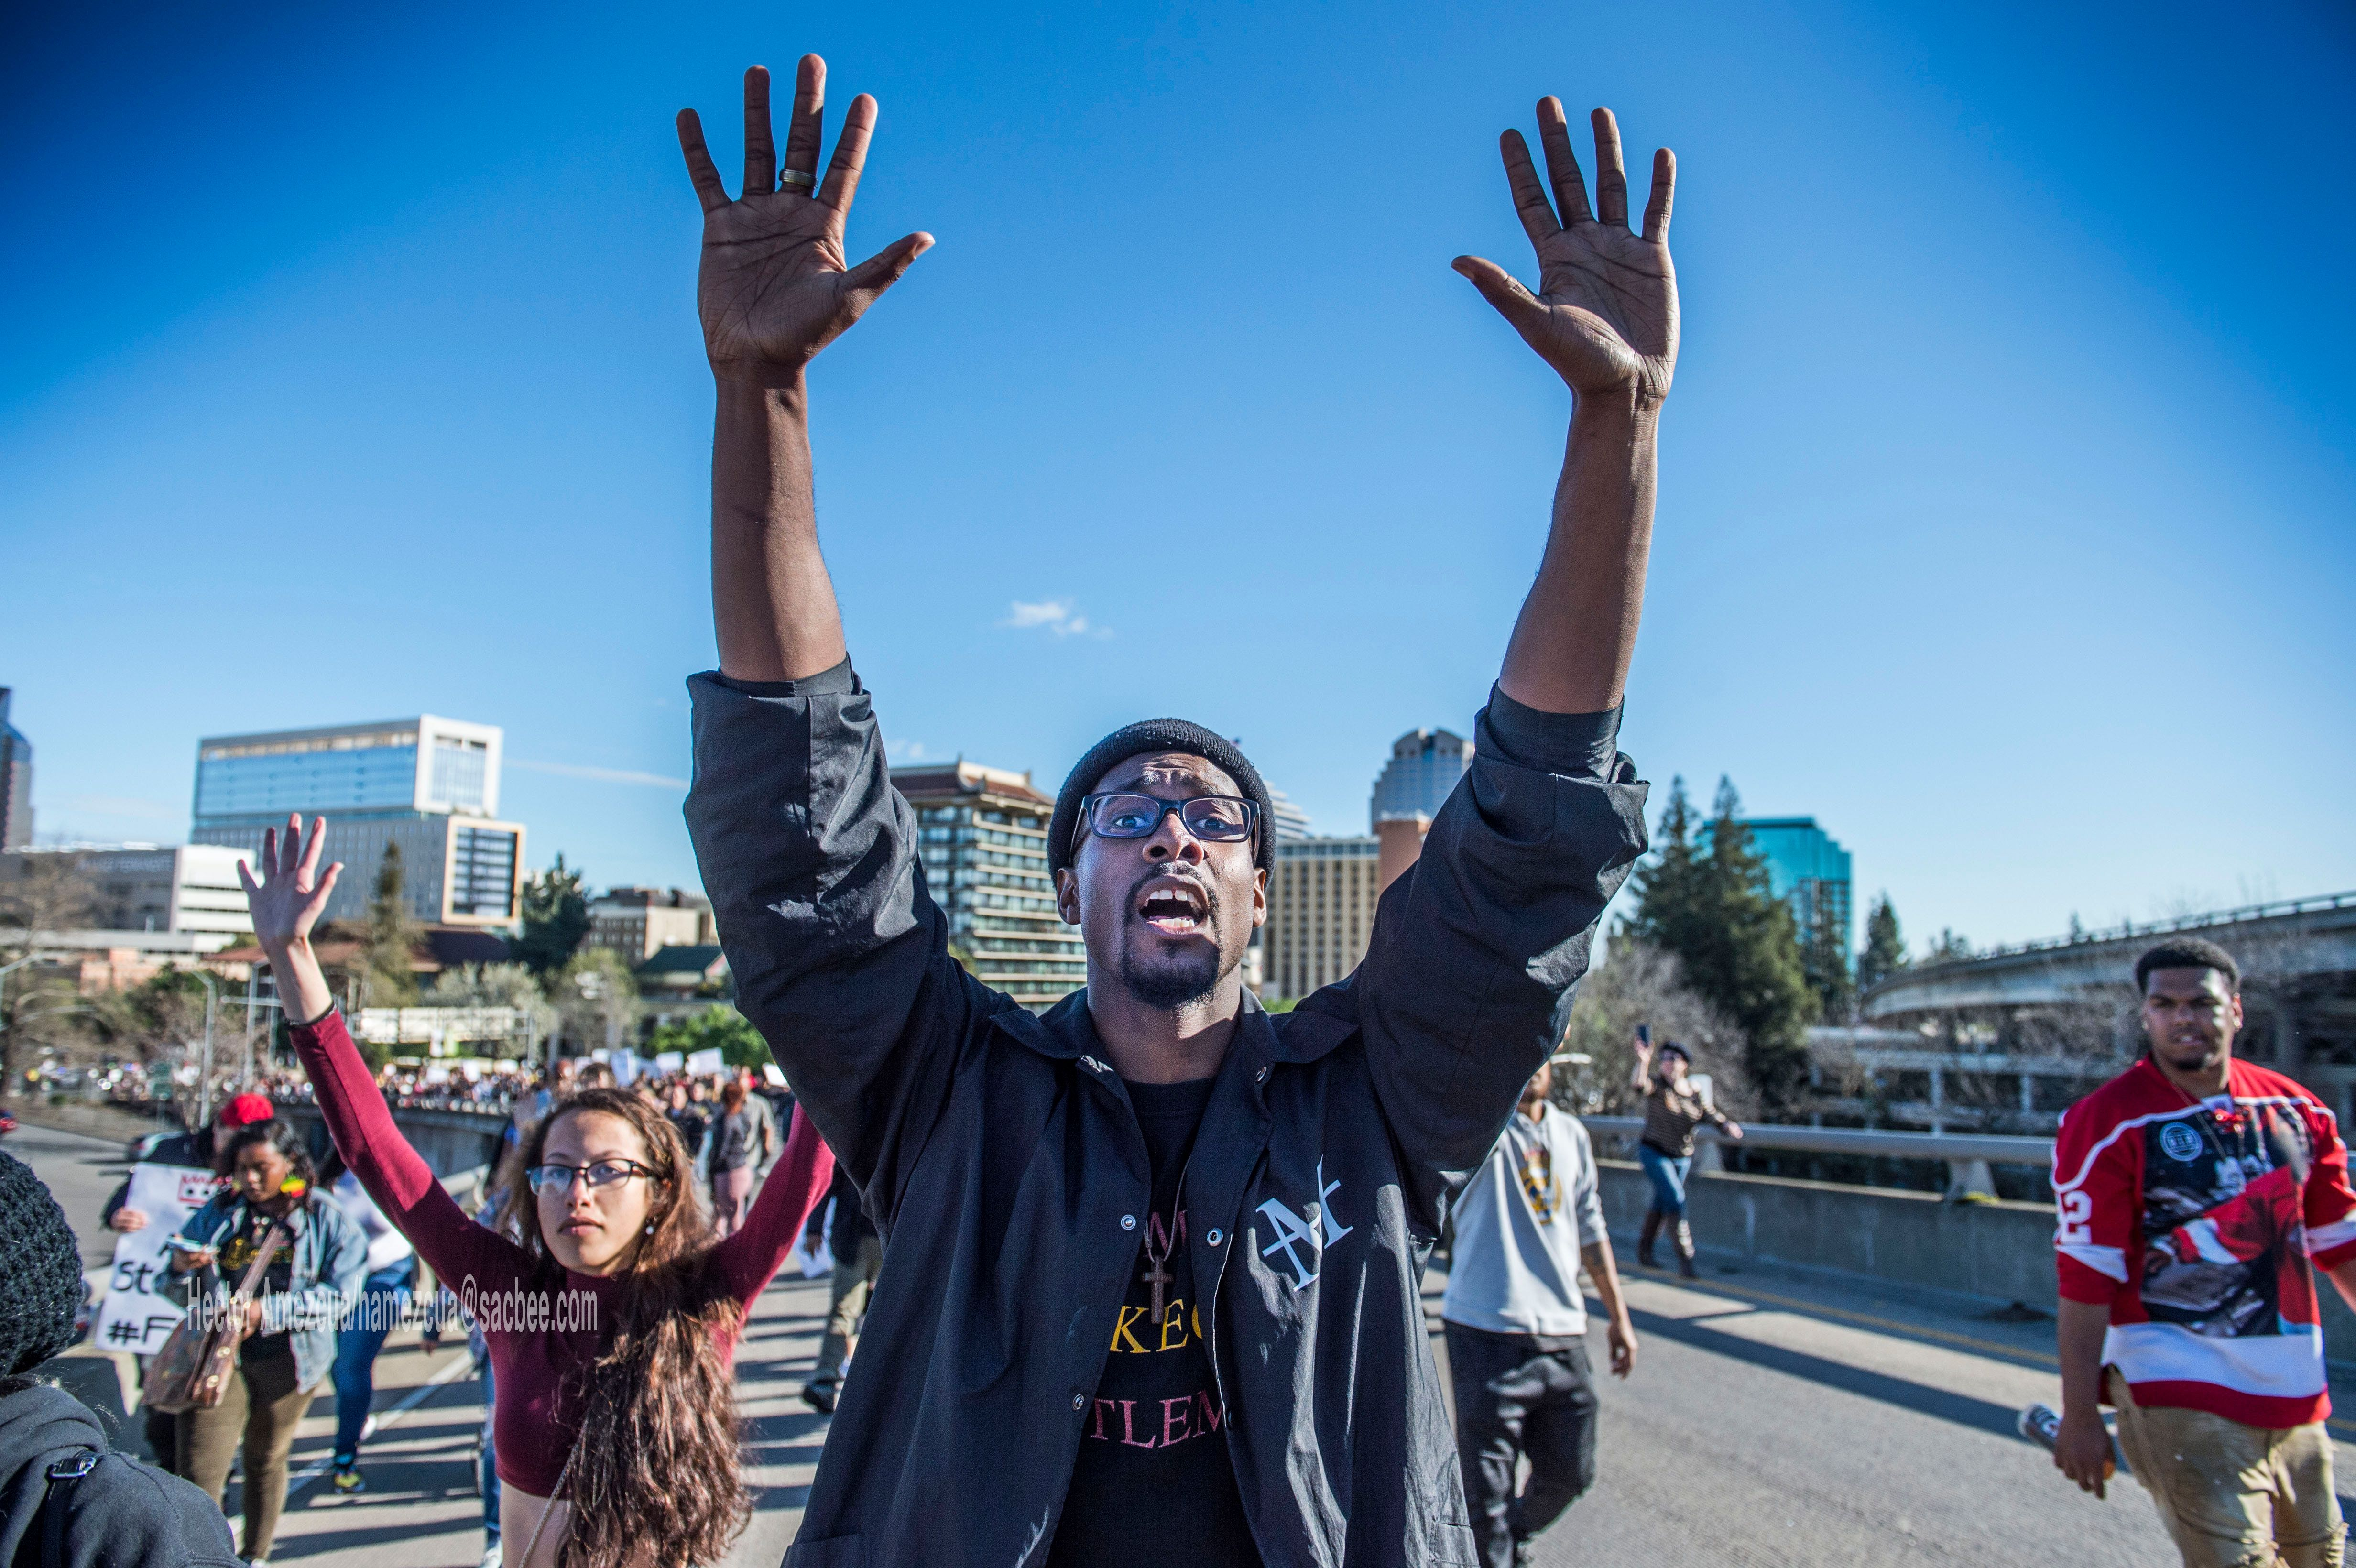 Black Lives Matter supporters walk on to the northbound Interstate 5 on-ramp from I street during a rally for Stephon Clark, a man that was shot by Sacramento Police Sunday night on southbound Interstate 5 near Old Sacramento, on Thursday, March 22, 2018. (Hector Amezcua/Sacramento Bee/TNS via Getty Images)